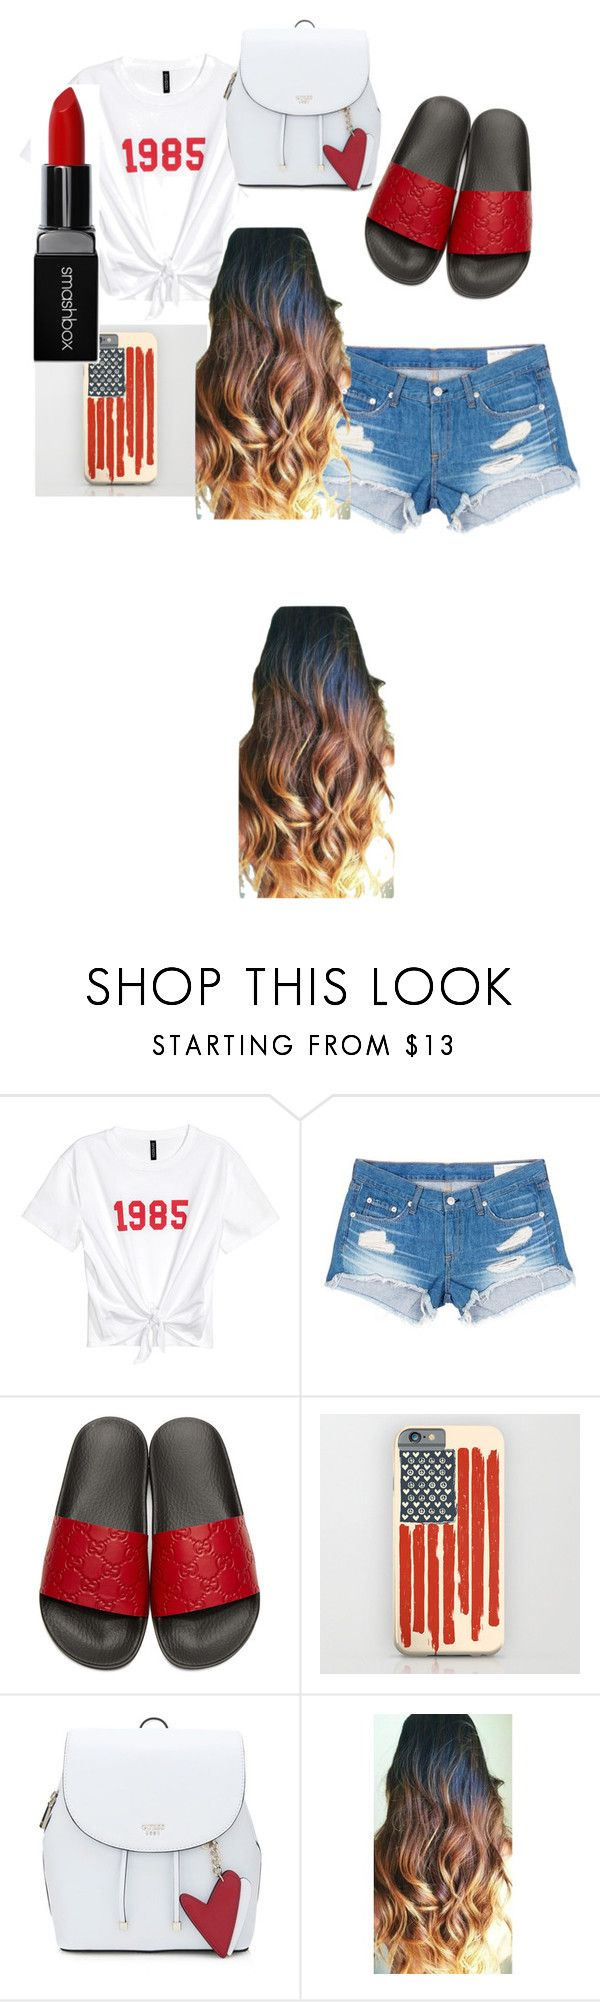 """casual  ♥♥baddie gal"" by syr-ina on Polyvore featuring rag & bone/JEAN, Gucci and Smashbox"